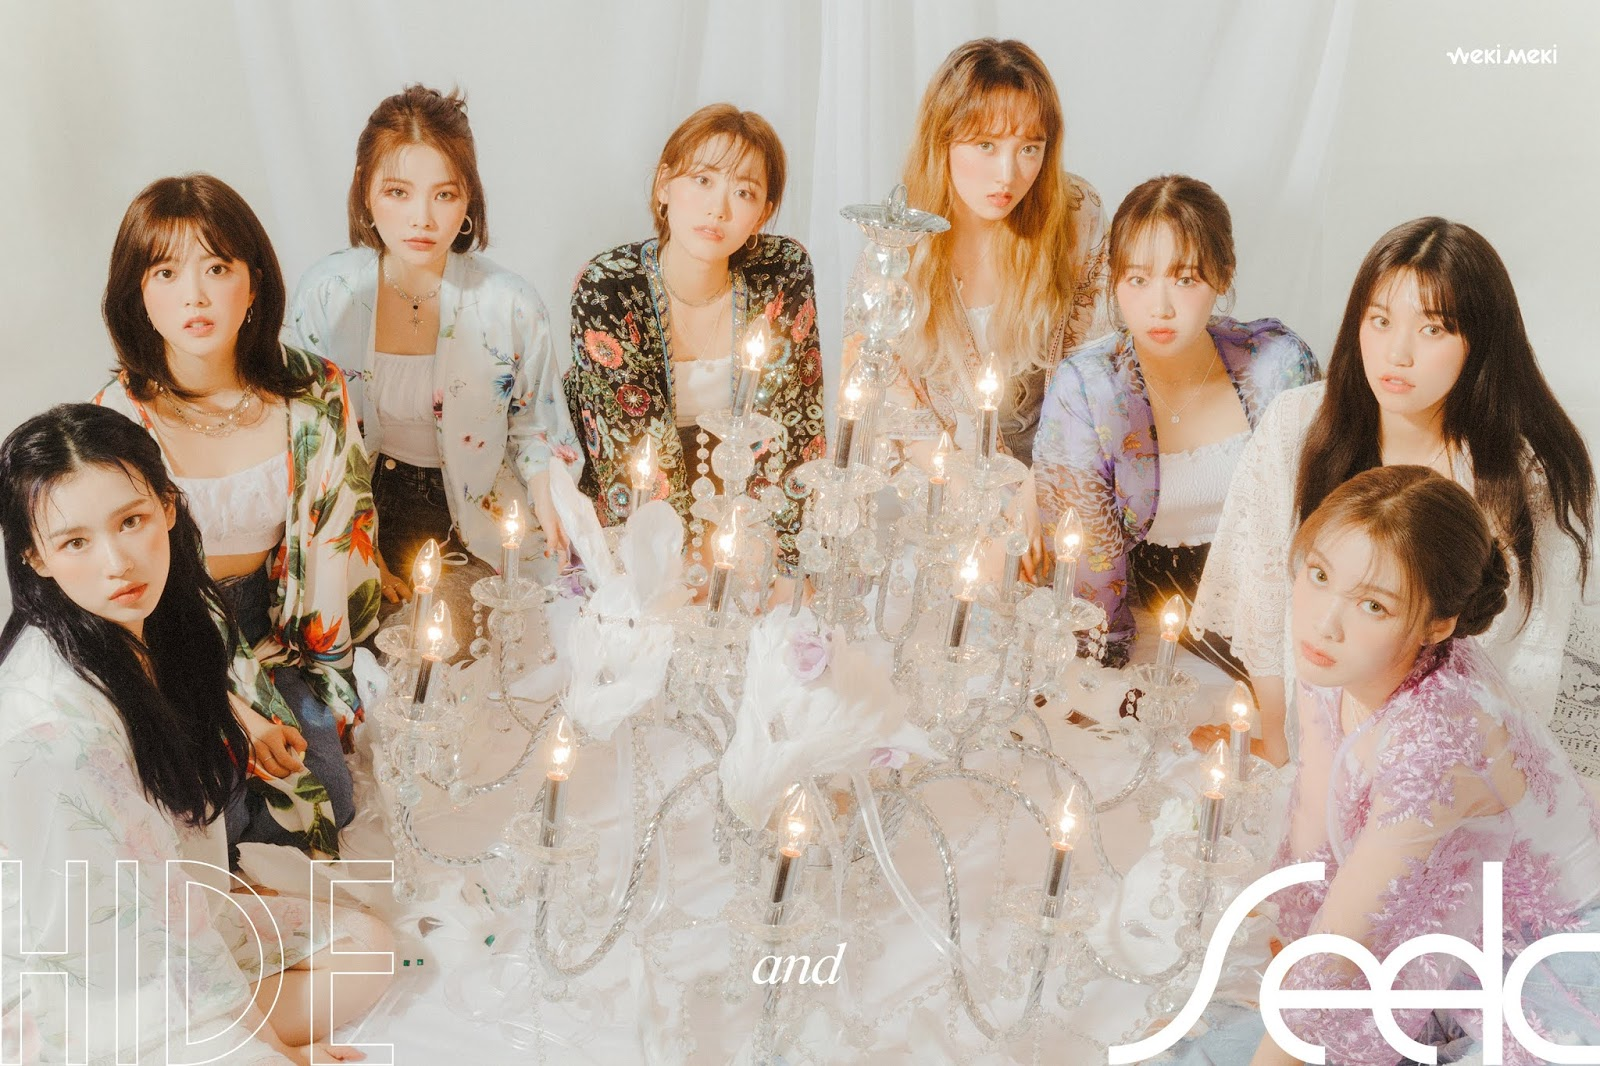 Weki Meki Hide and Seek Album